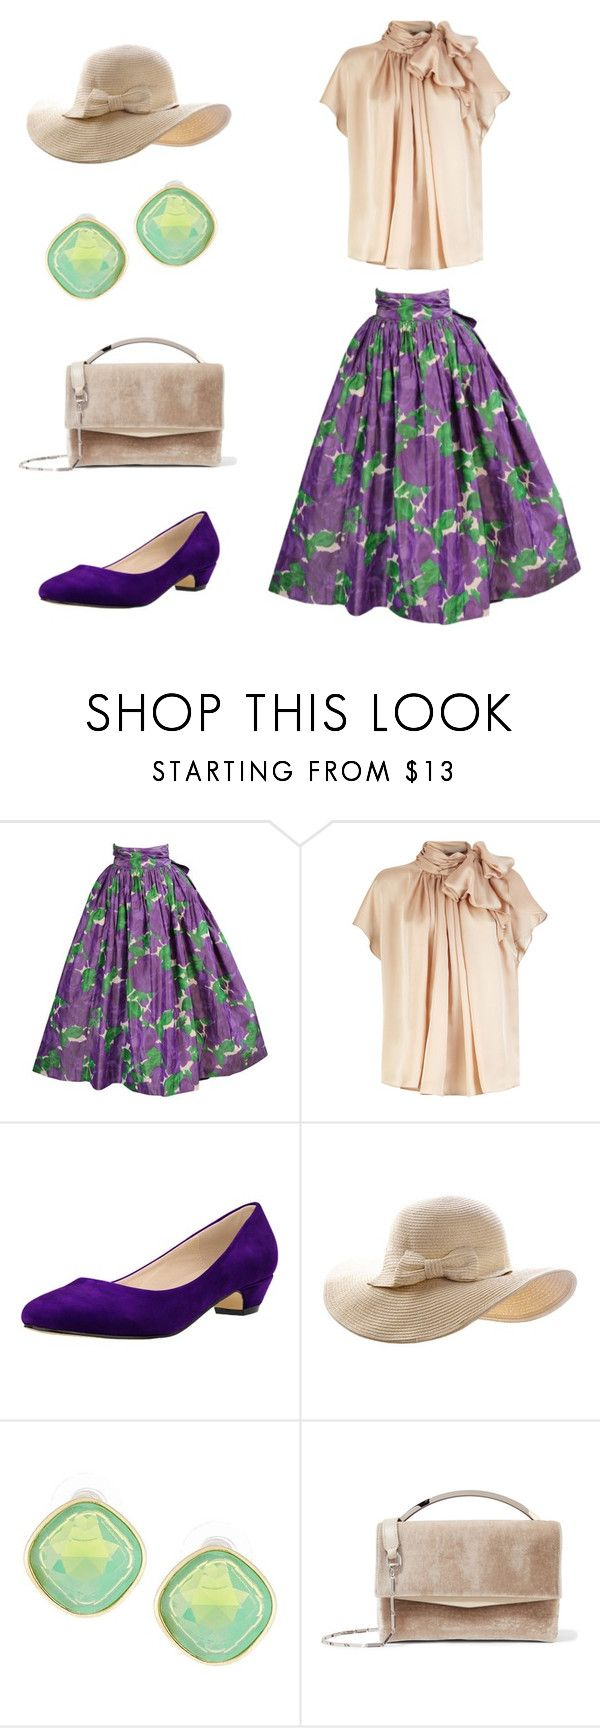 """""""Springtime Lady"""" by tania-san ❤ liked on Polyvore featuring Yves Saint Laurent, Lydell NYC and Eddie Borgo"""